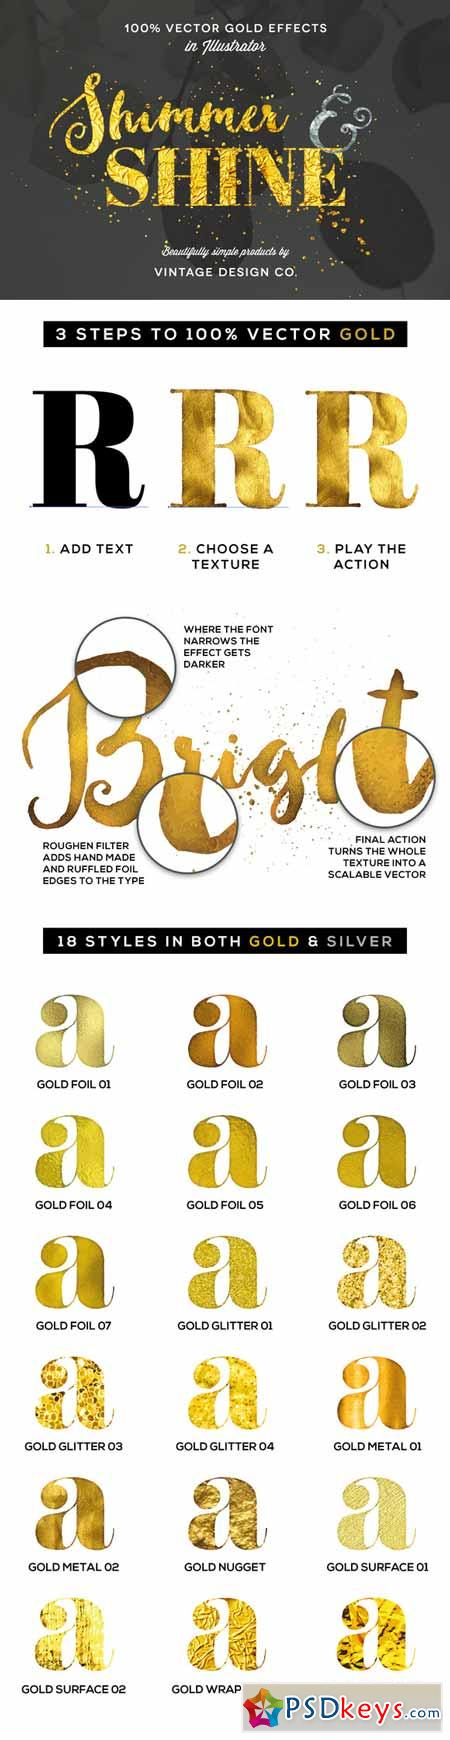 Shimmer Shine 100 Vector Gold 236592 Free Download Photoshop